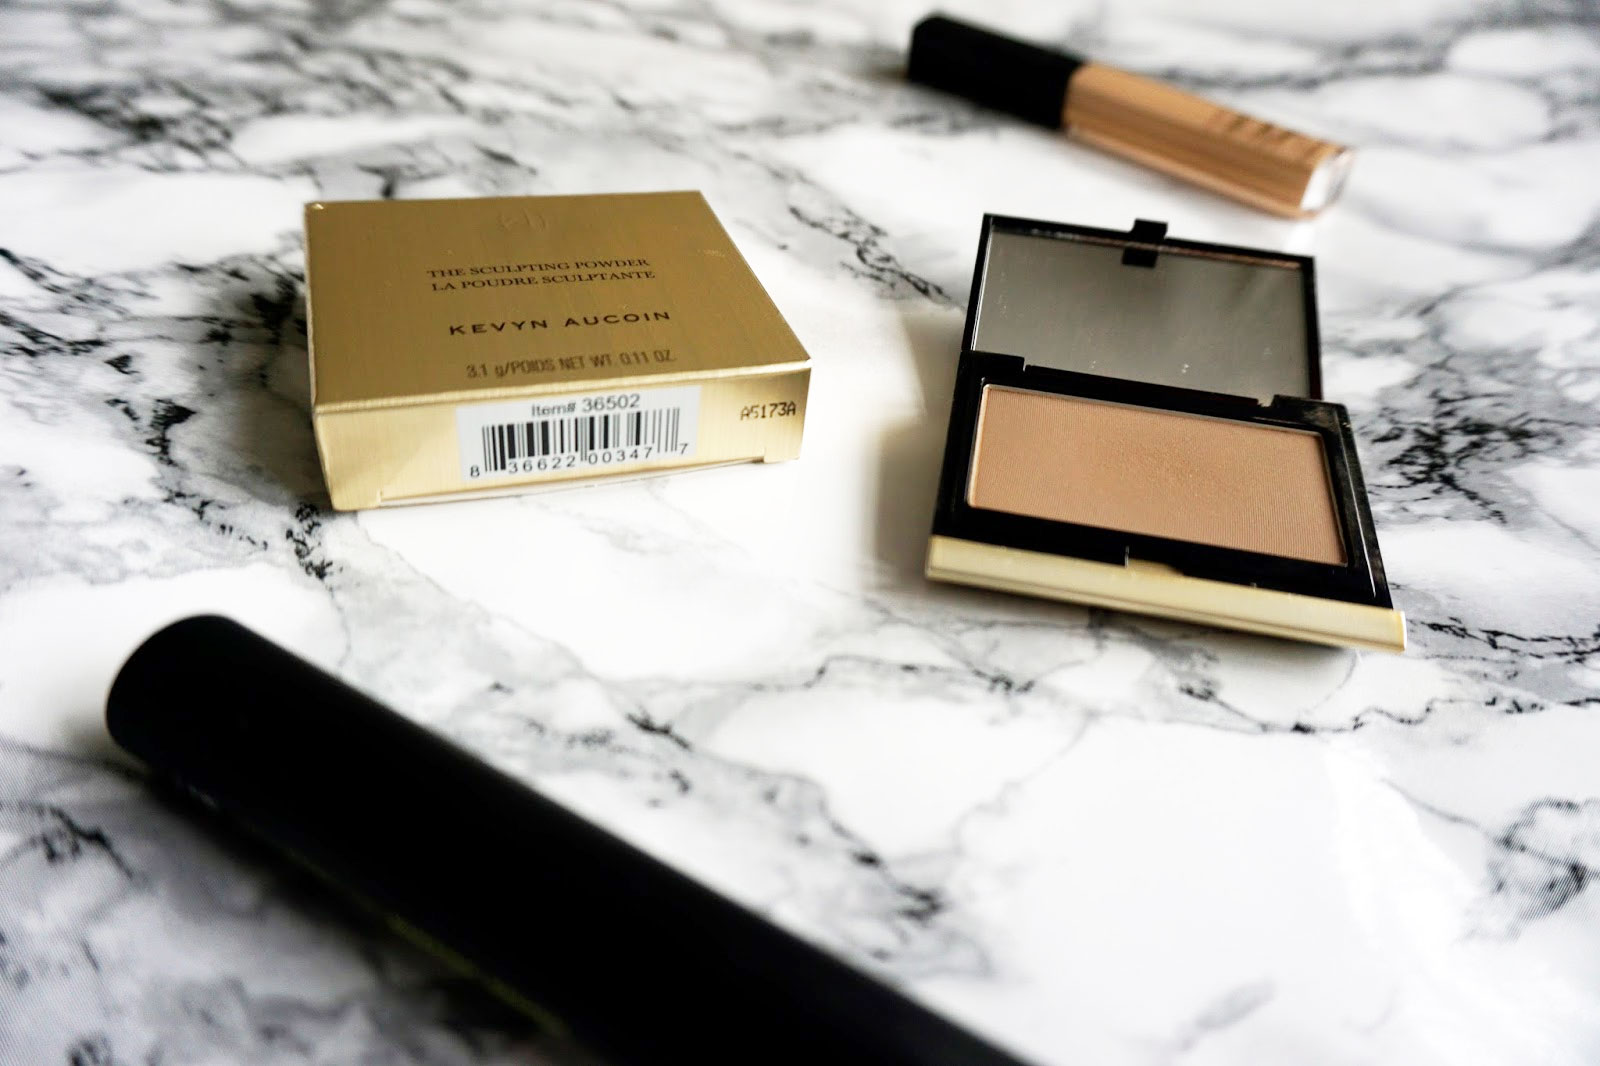 Kevyn Aucoin Sculpting Powder in Medium Review